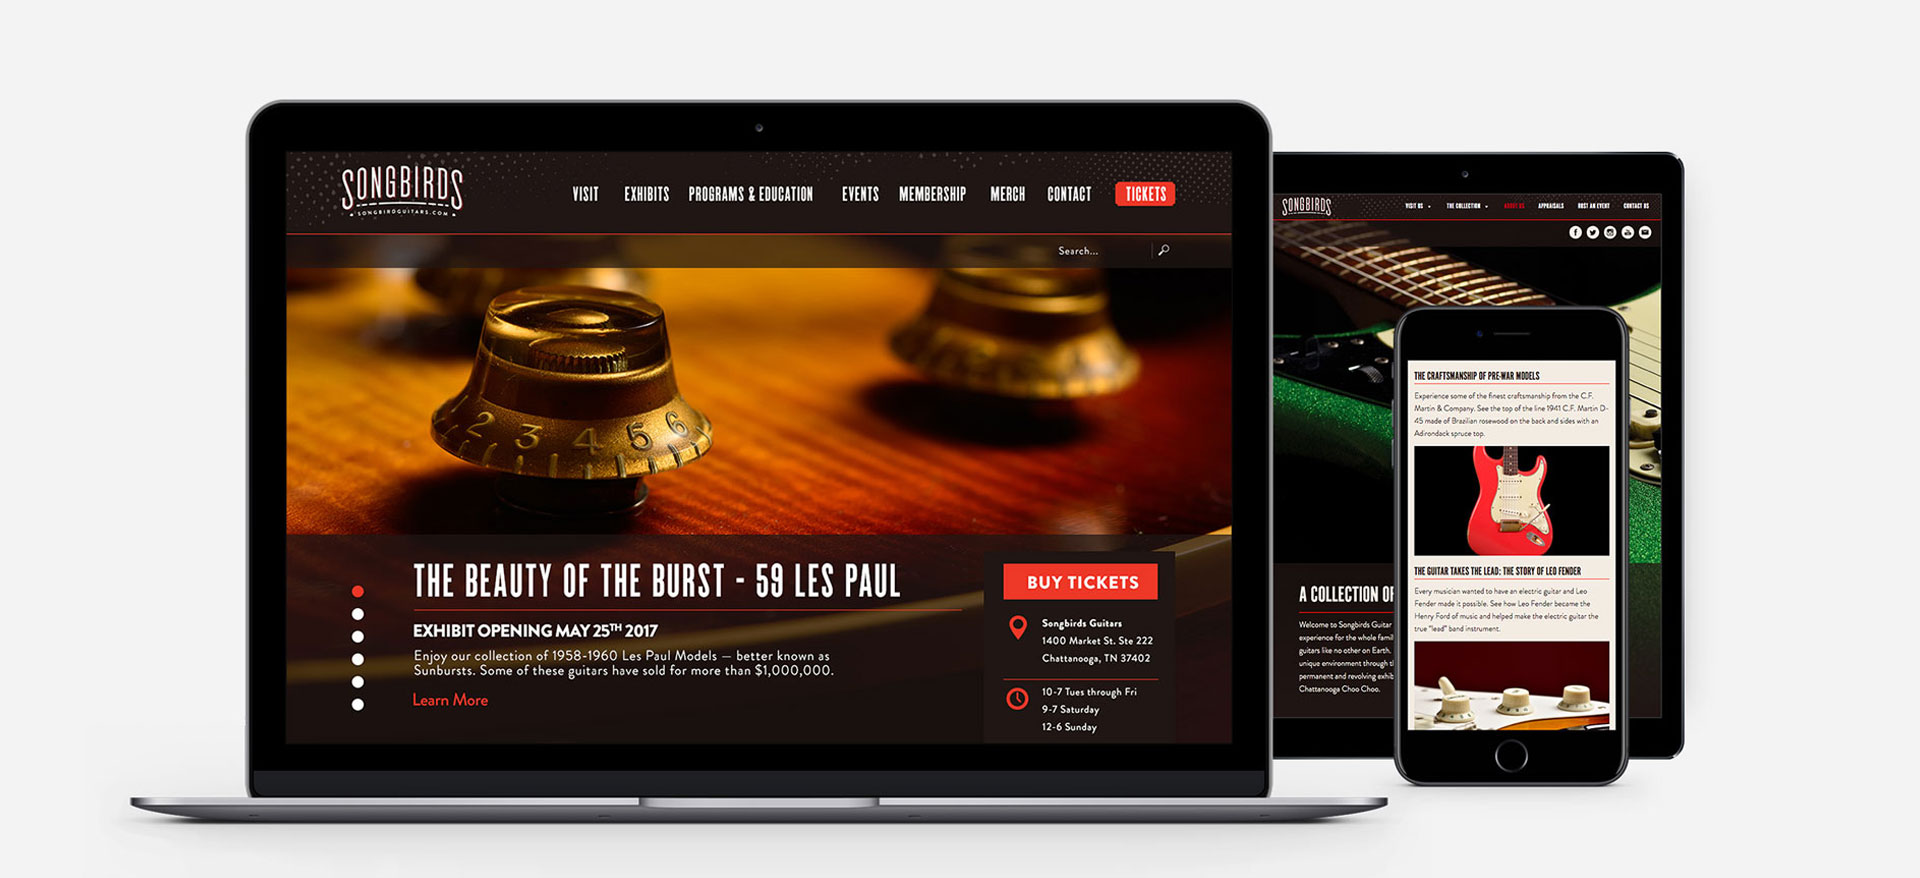 Songbirds Guitars - Branding, Identity, Logos, Logo Design, Web Design, Web Development